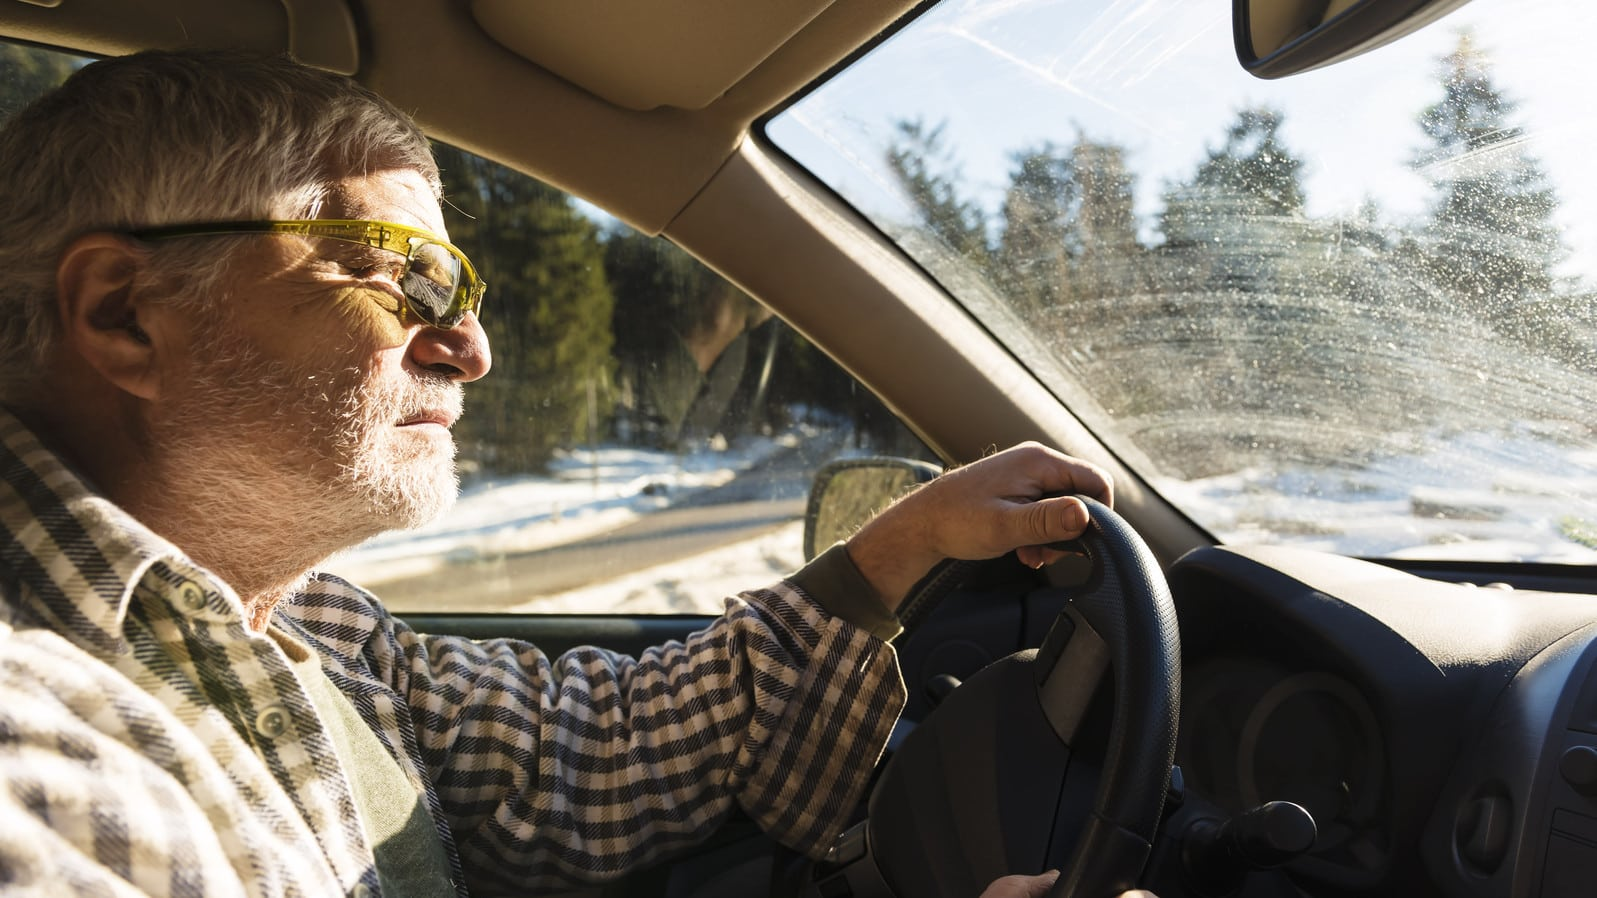 Elderly Man Driving Vehicle Stock Photo